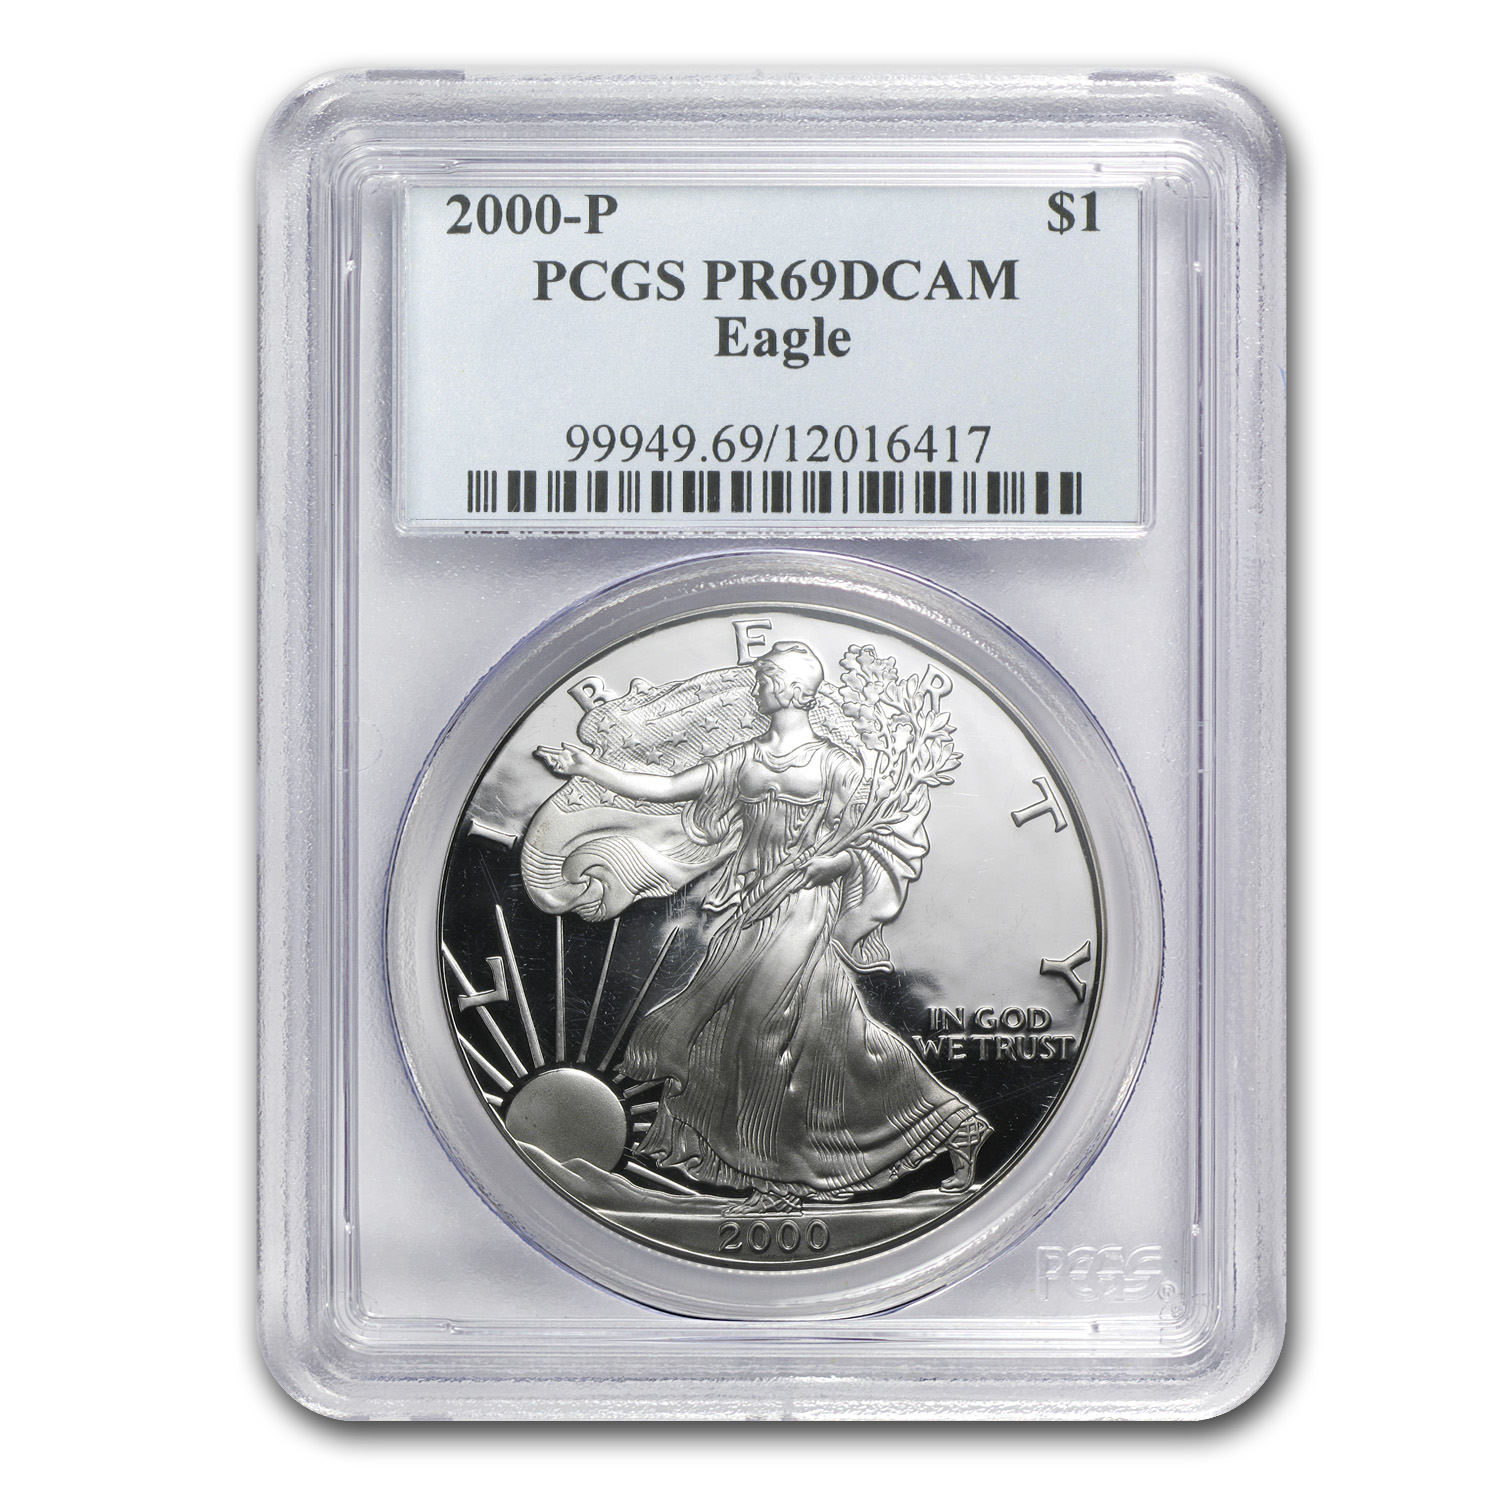 2000-P Proof Silver American Eagle PR-69 PCGS